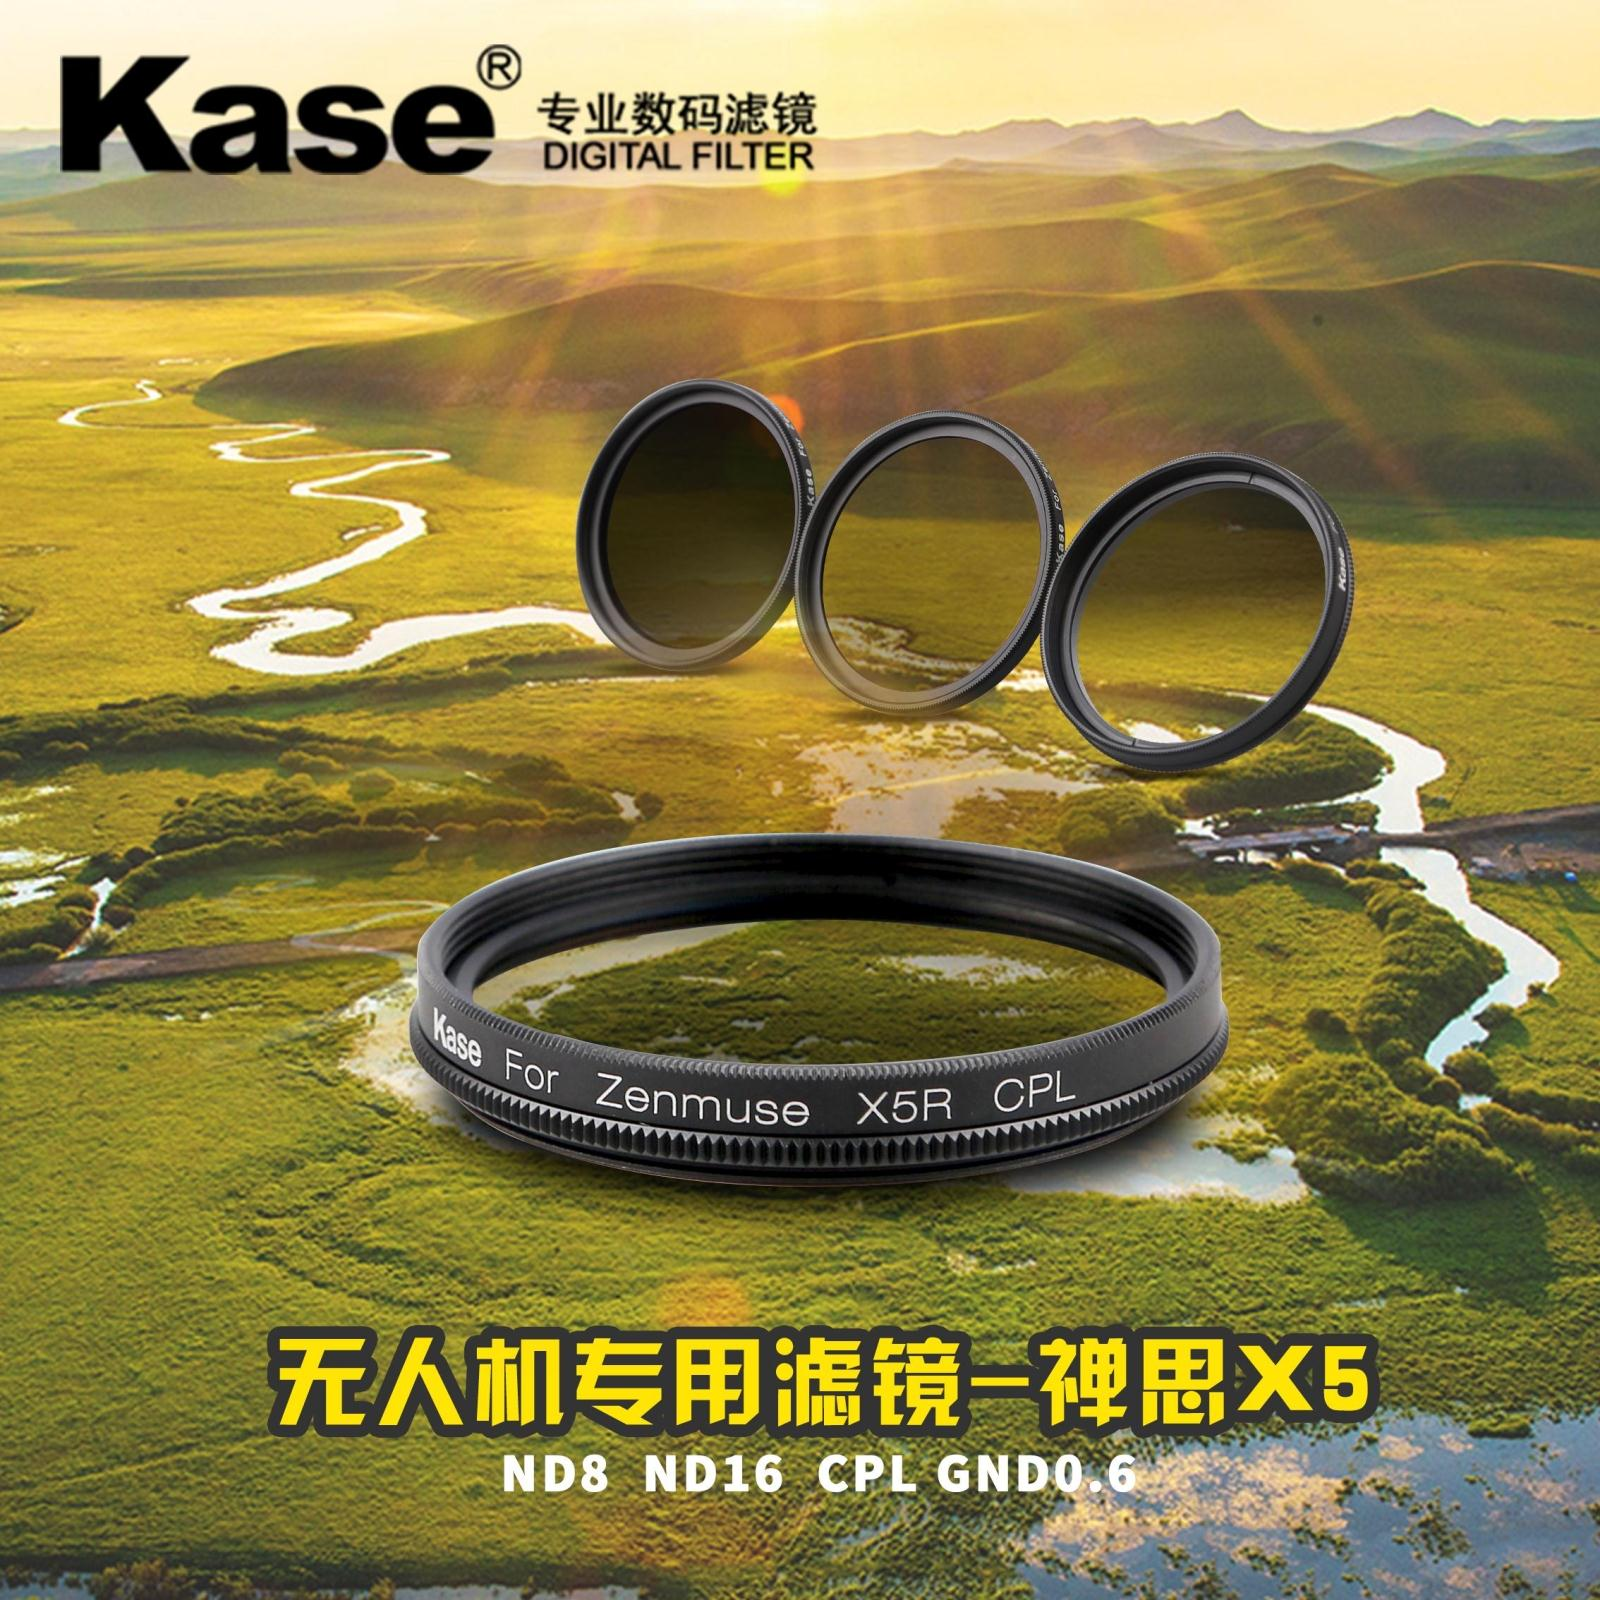 The sf kase card color filter uav dajiang zen x5/x5r gradient lens by light microscopy The polarizer